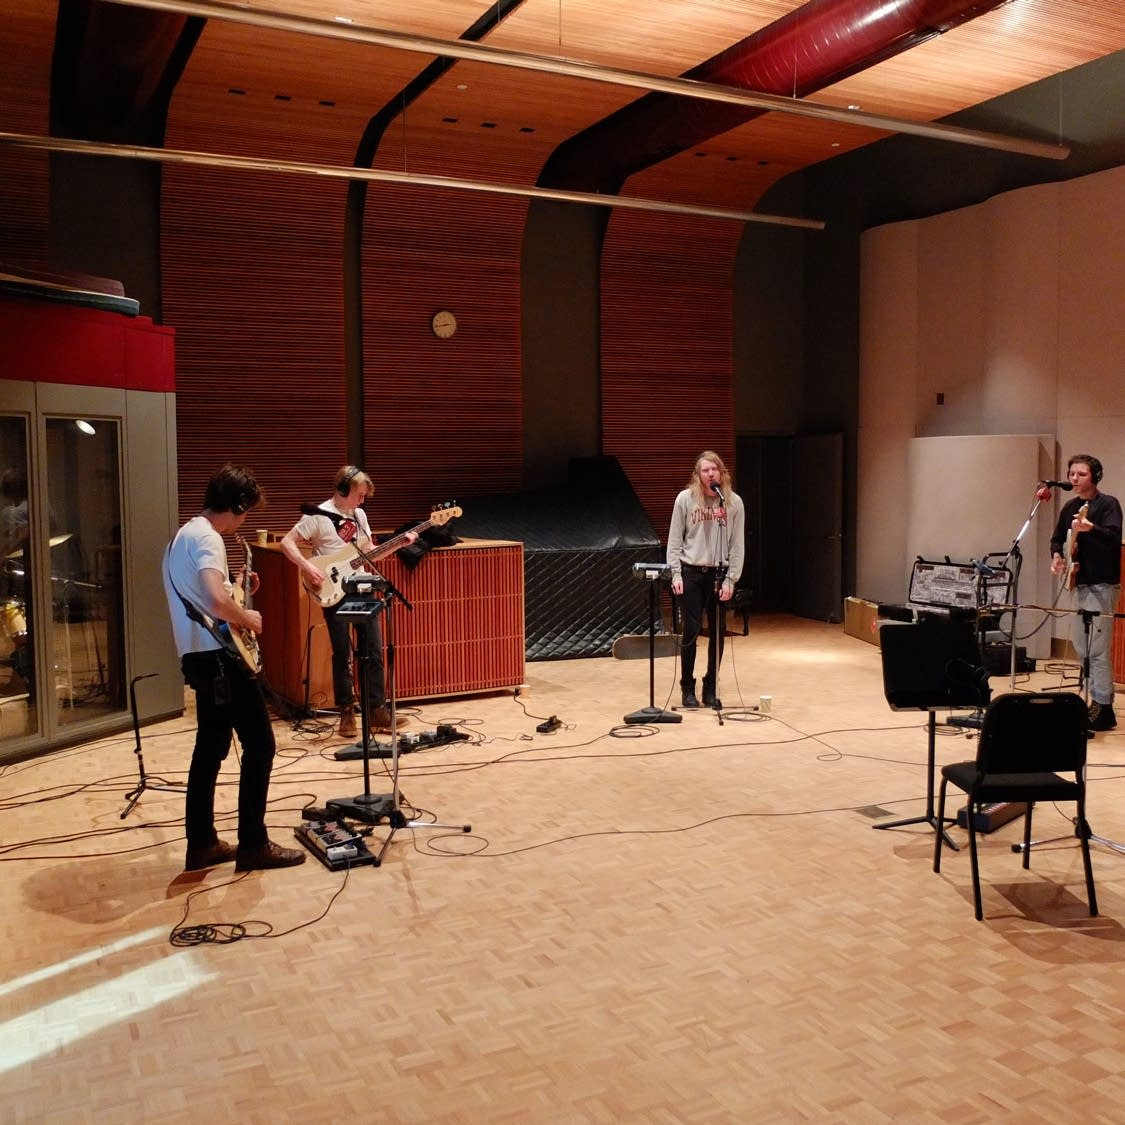 The Orwells perform in The Current studio